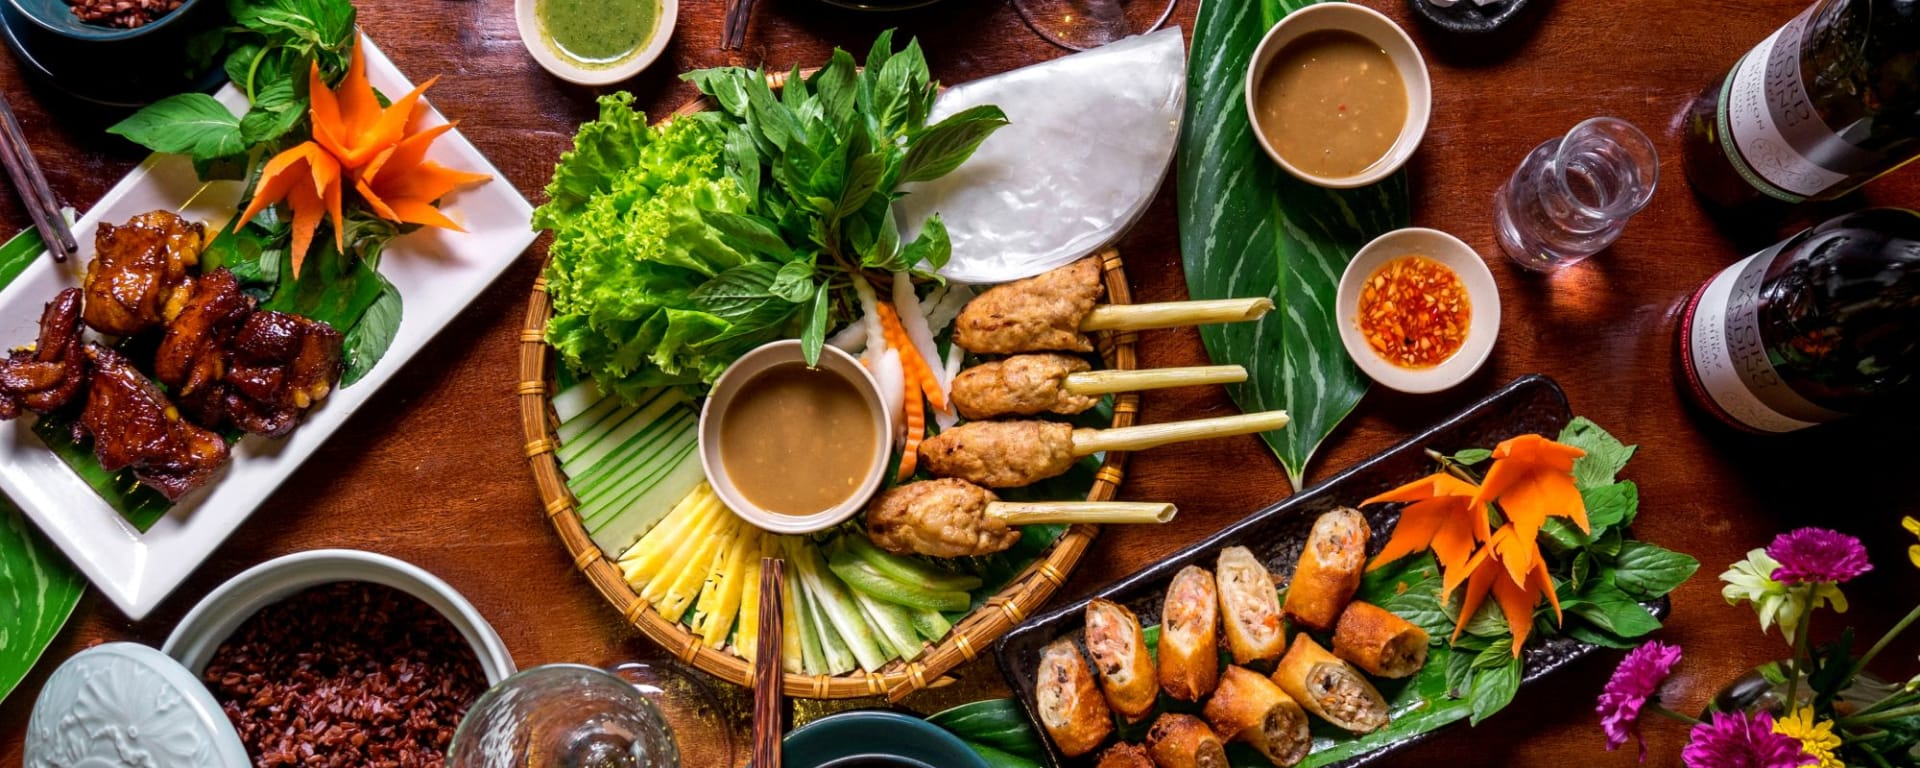 Vespa Streetfood Tour in Saigon: Vietnamese meatball, spring roll, pork roasted, brown rice